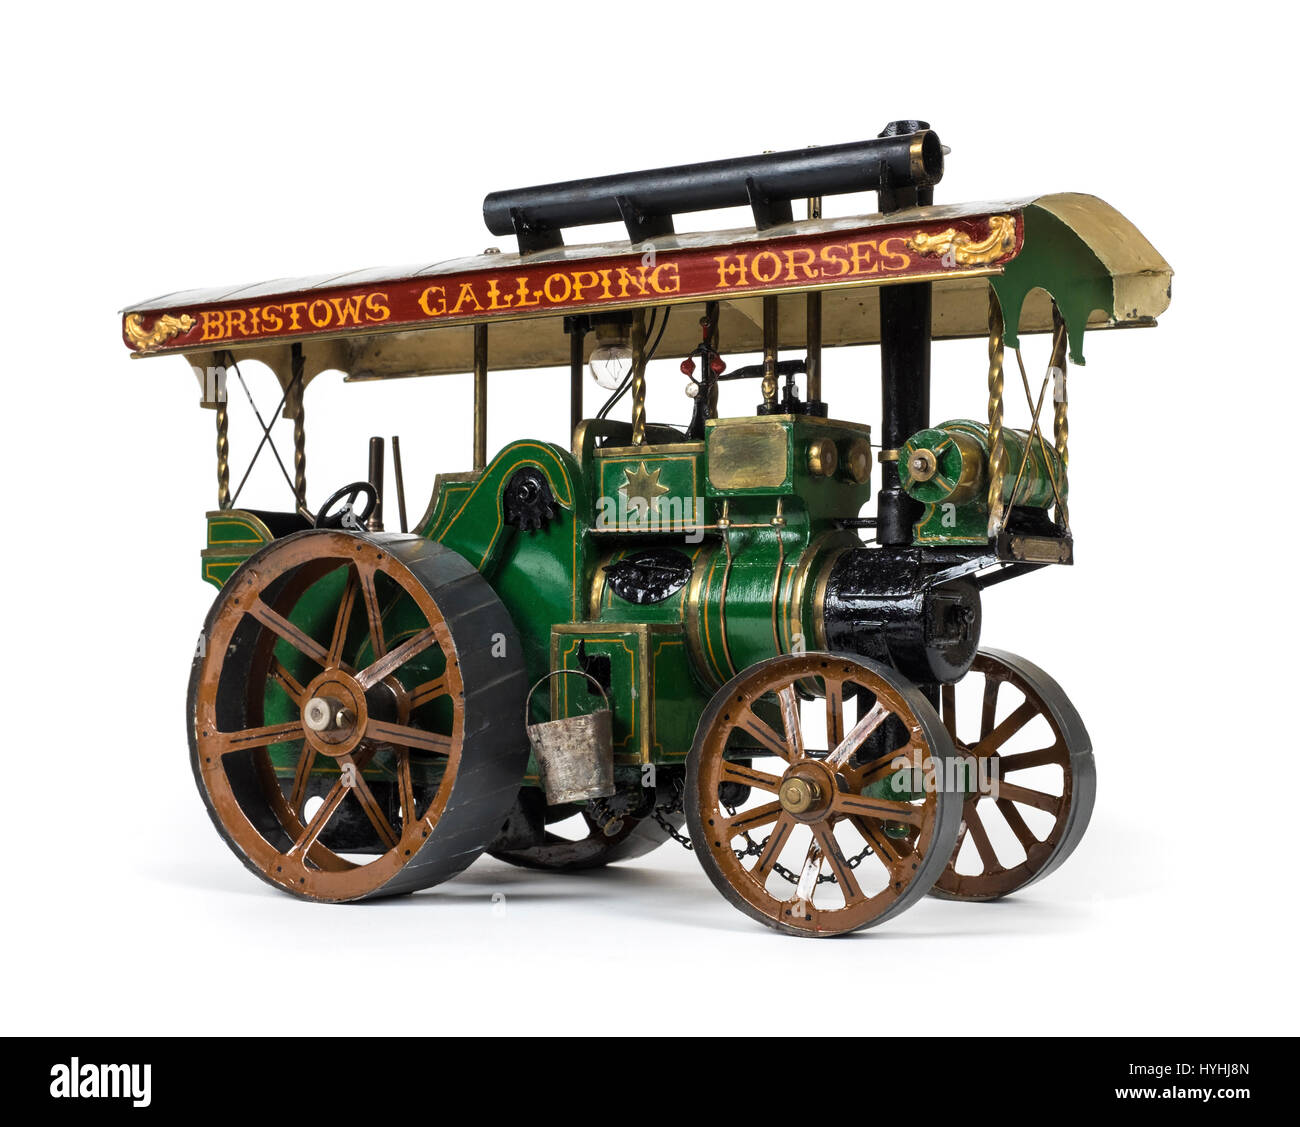 Vintage tinplate model steam traction engine with green bodywork and canopy inscribed 'Bristows Galloping Horses' - Stock Image